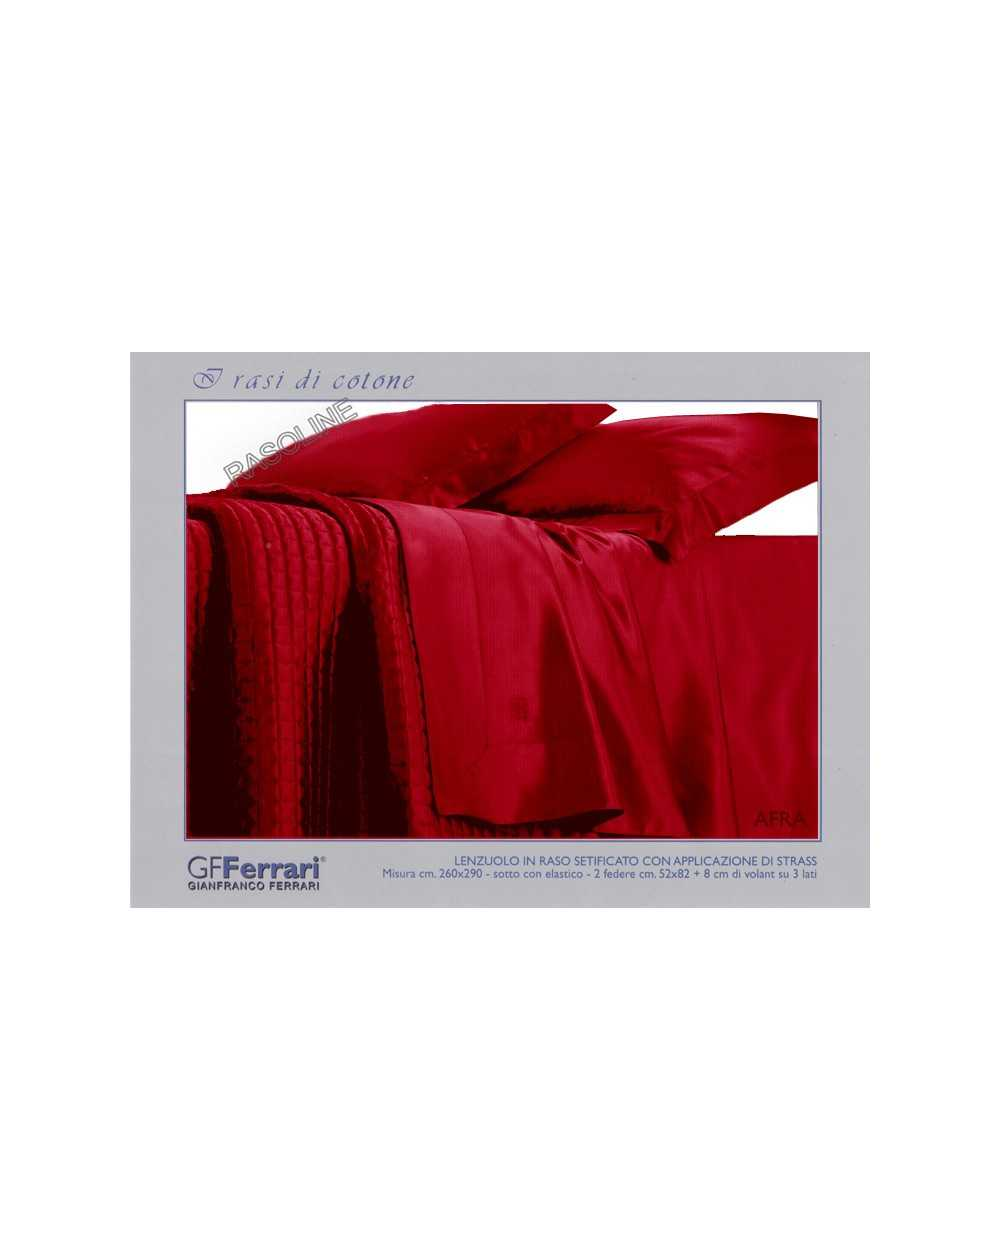 Completo Letto Matrimoniale Rosso ~ duylinh for